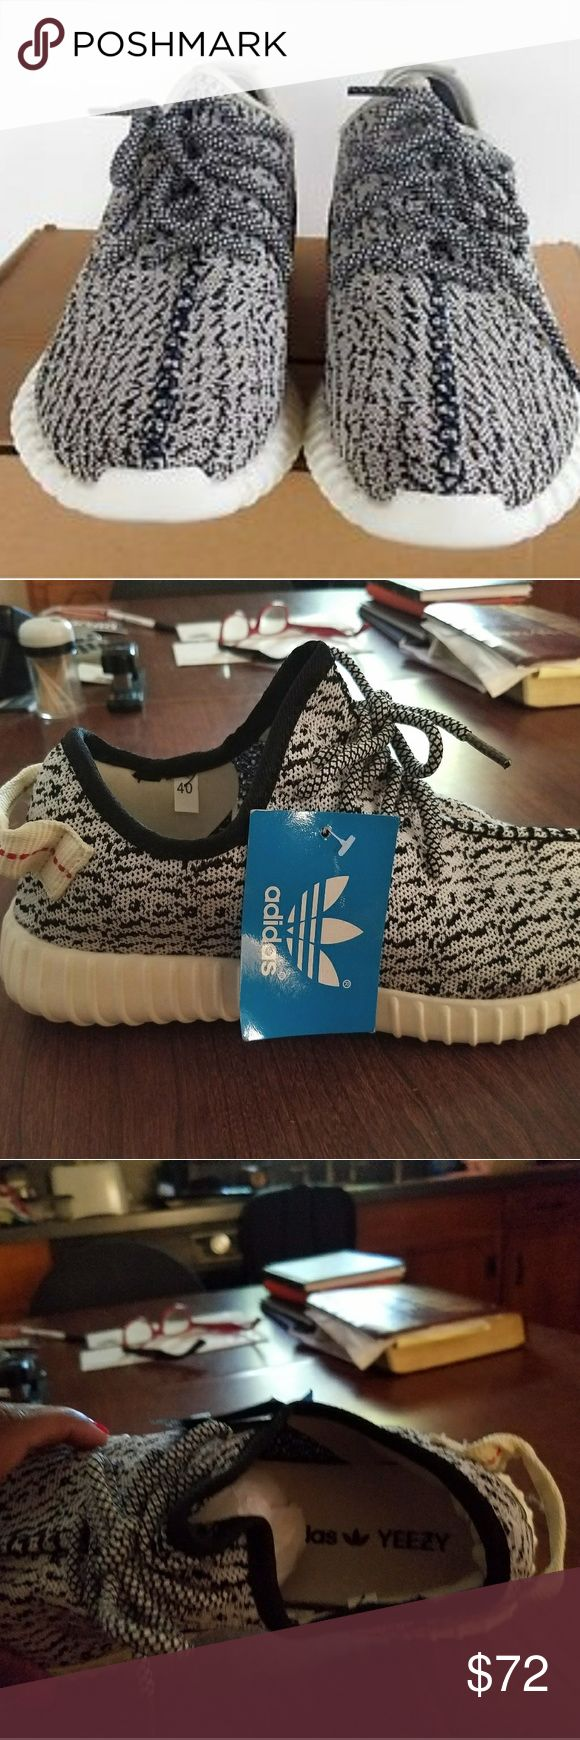 YEEZY BOOST Brand new with tags! Comfy and on trend! Price is firm and no trades! Buy both pair and recieve 10% off! 😁 adidas Shoes Athletic Shoes